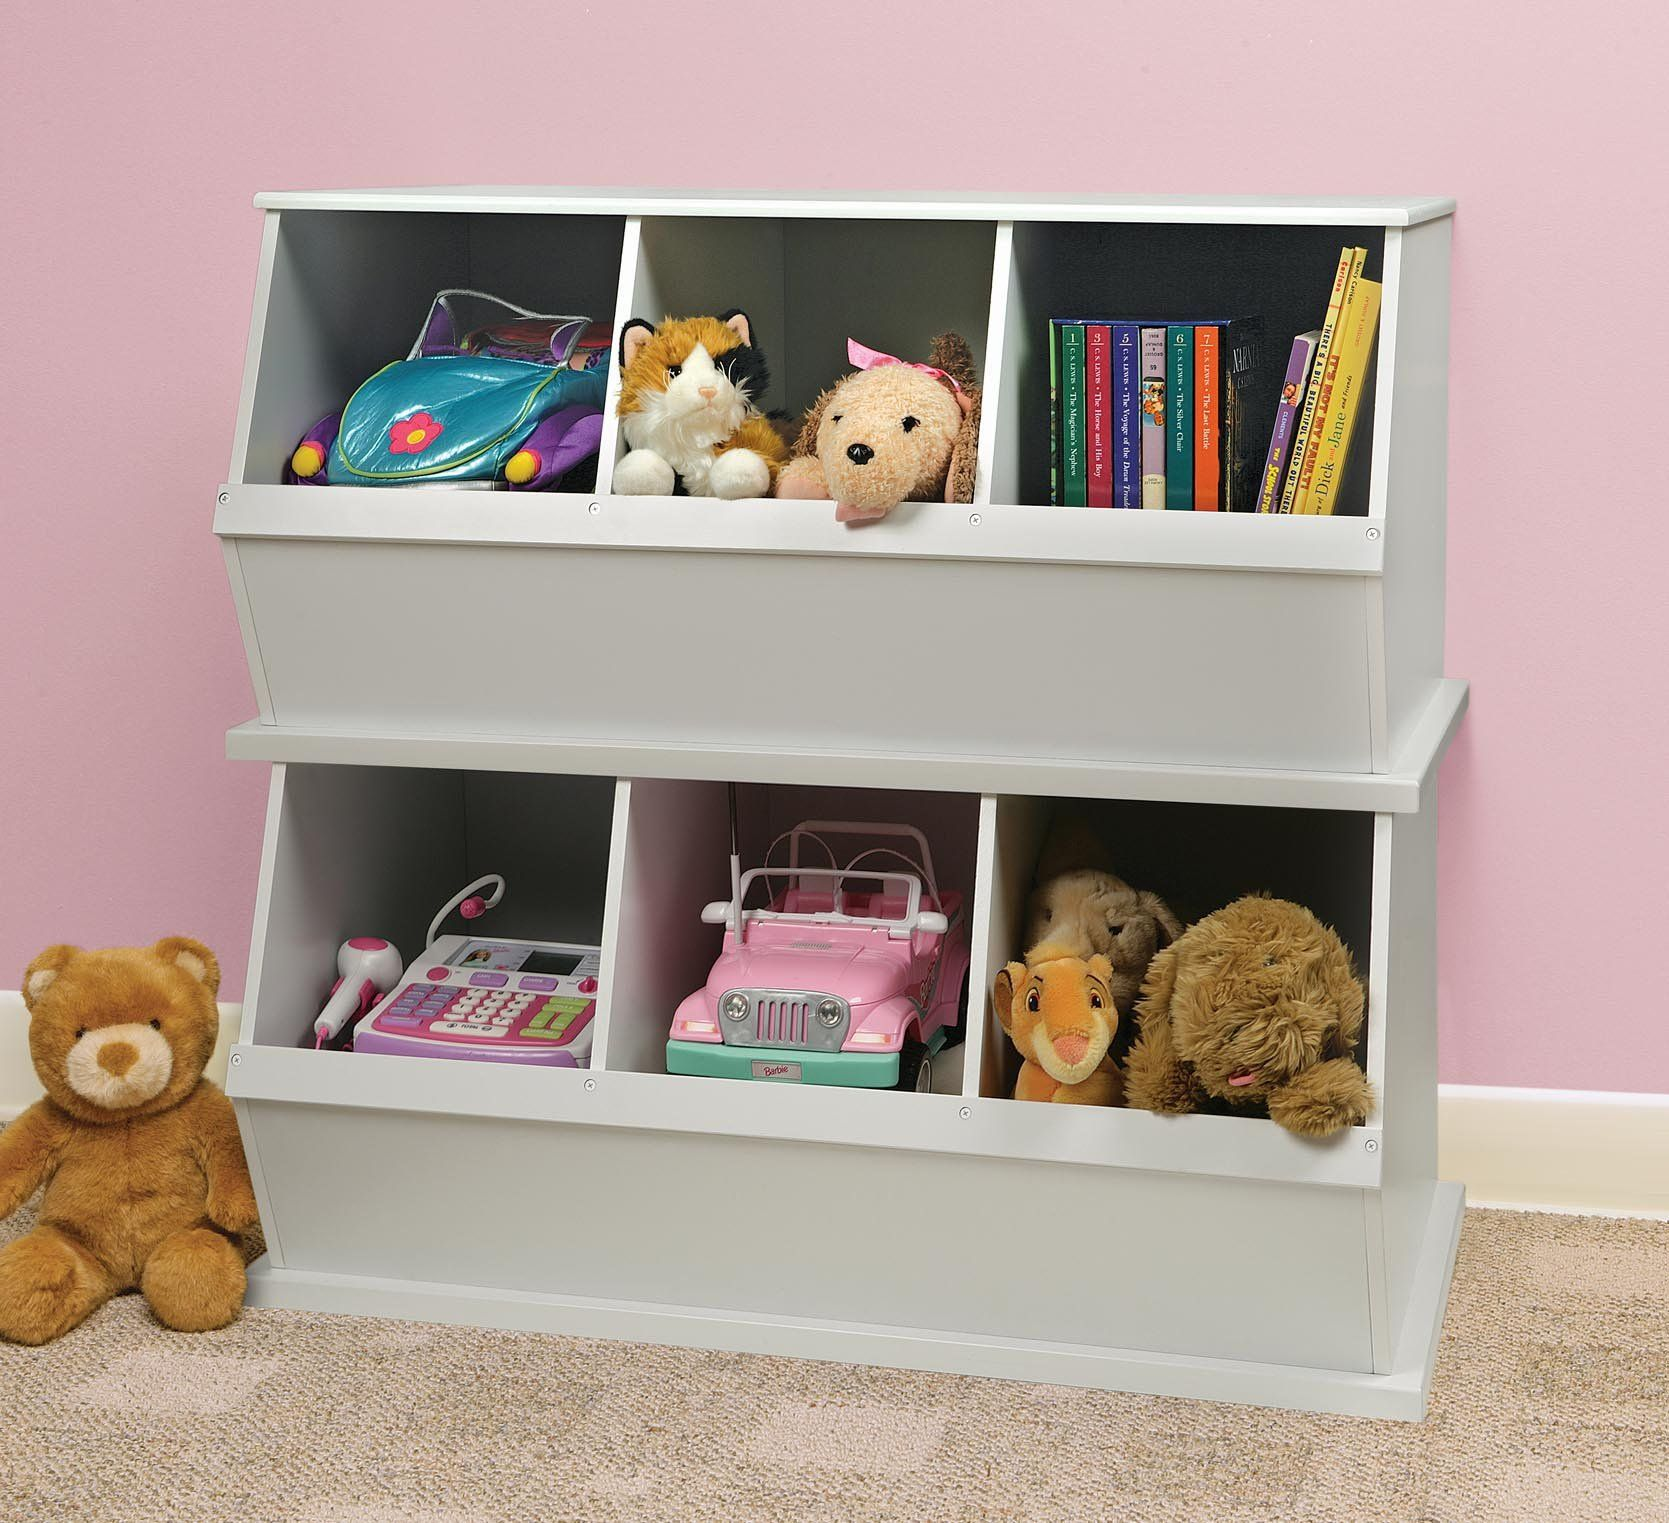 Superior Amazon.com : Three Bin Storage Cubby   White : Childrens Storage Furniture  : Baby